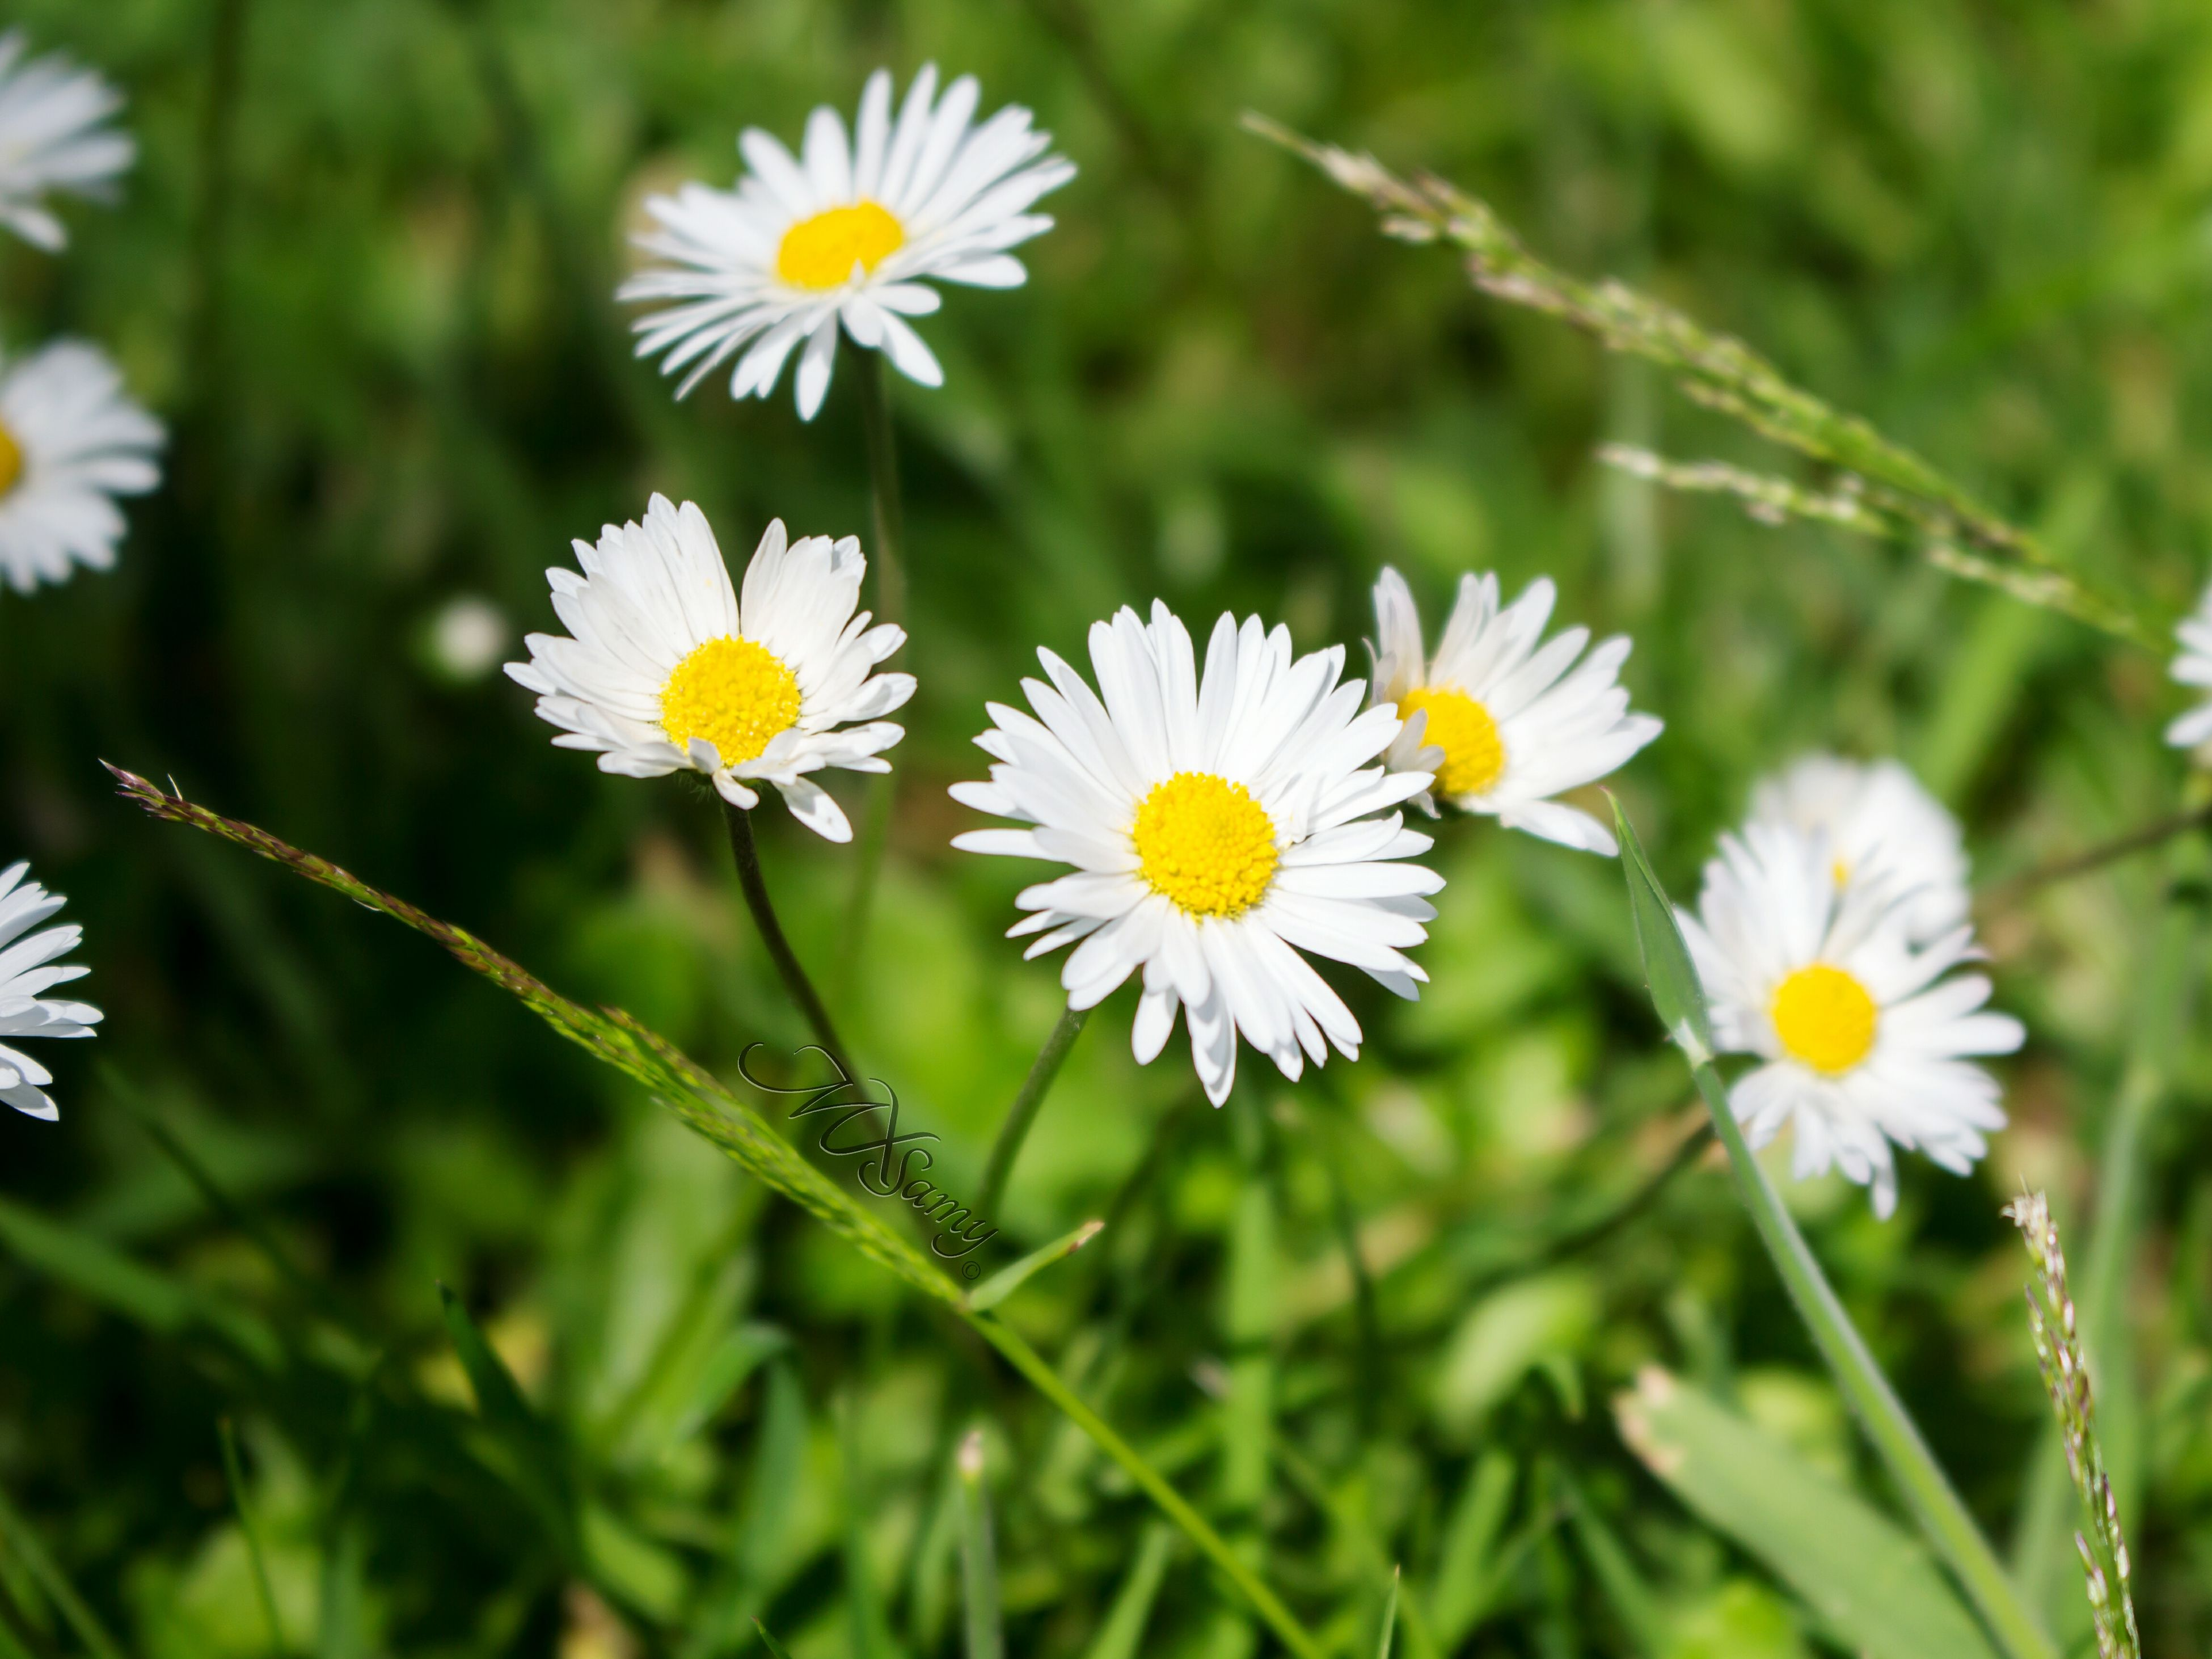 flower, freshness, white color, fragility, growth, petal, daisy, flower head, beauty in nature, nature, focus on foreground, blooming, plant, close-up, pollen, field, stem, yellow, day, in bloom